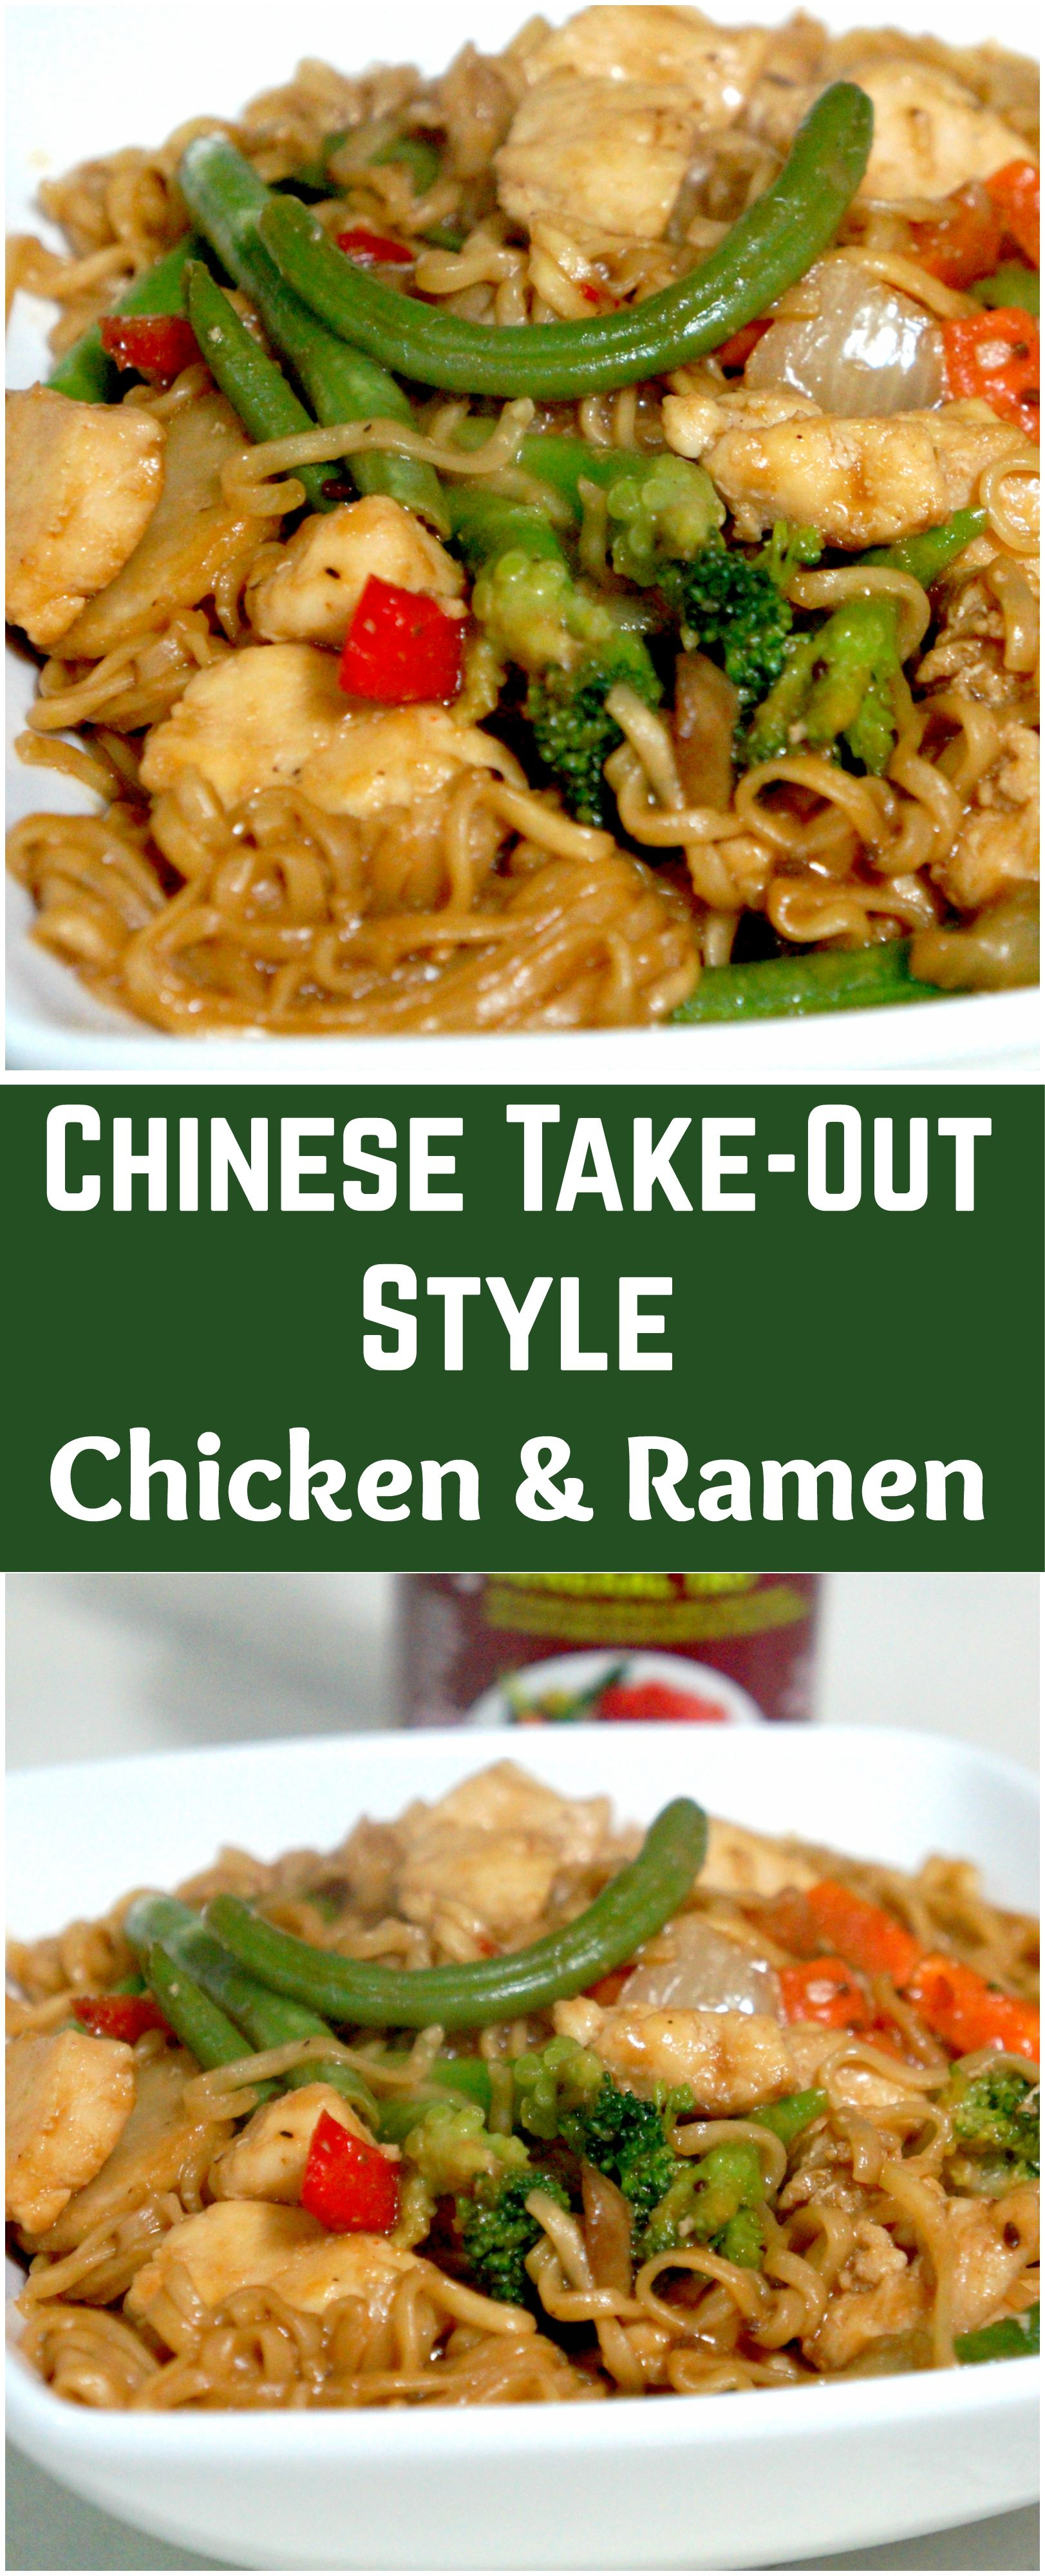 Easy chicken dinner recipe chicken and ramen noodles recipes easy chicken dinner recipe chicken and ramen noodles forumfinder Image collections